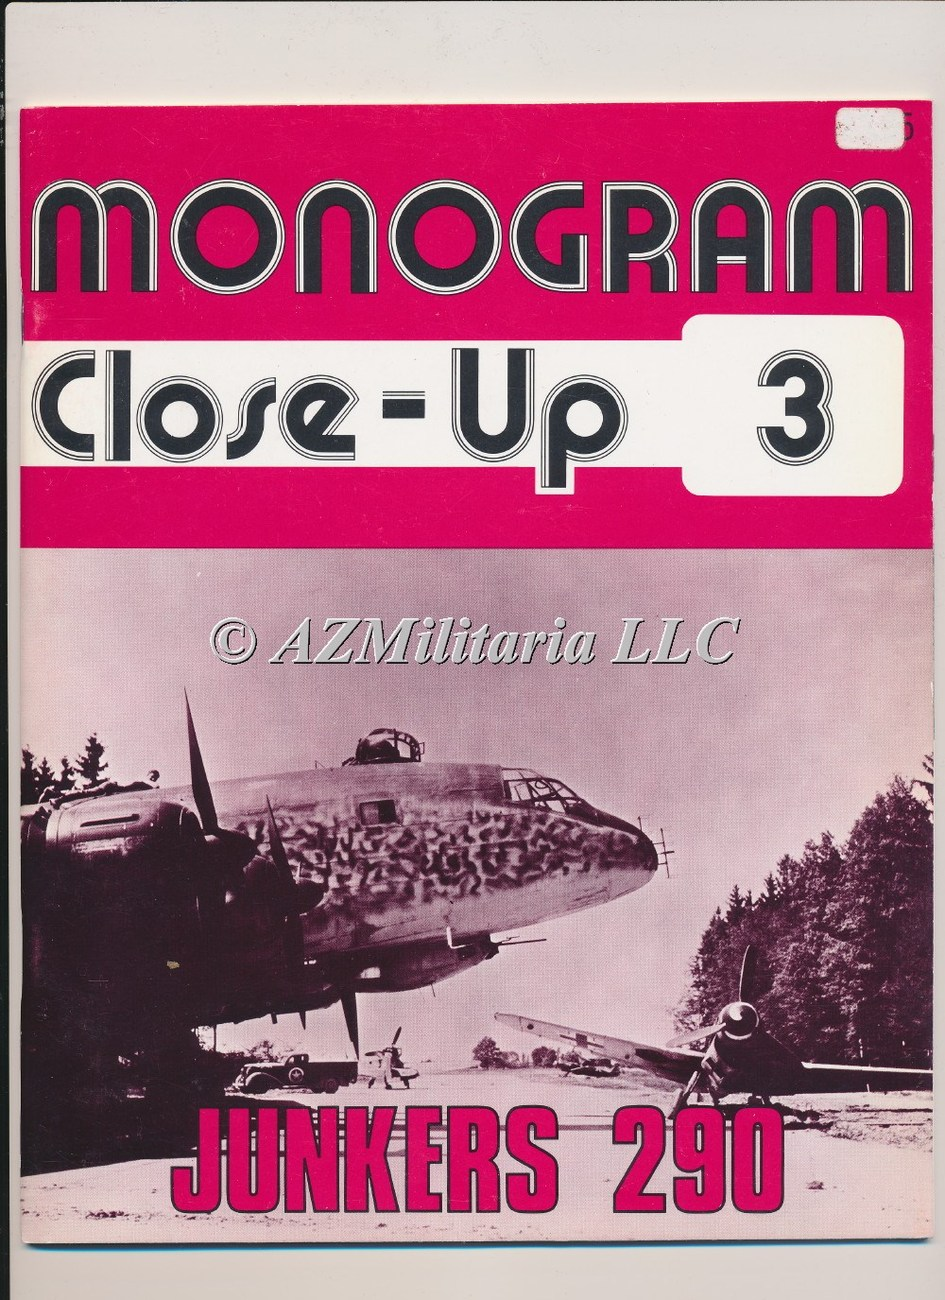 Monogram Close-Up 3 Junkers 290